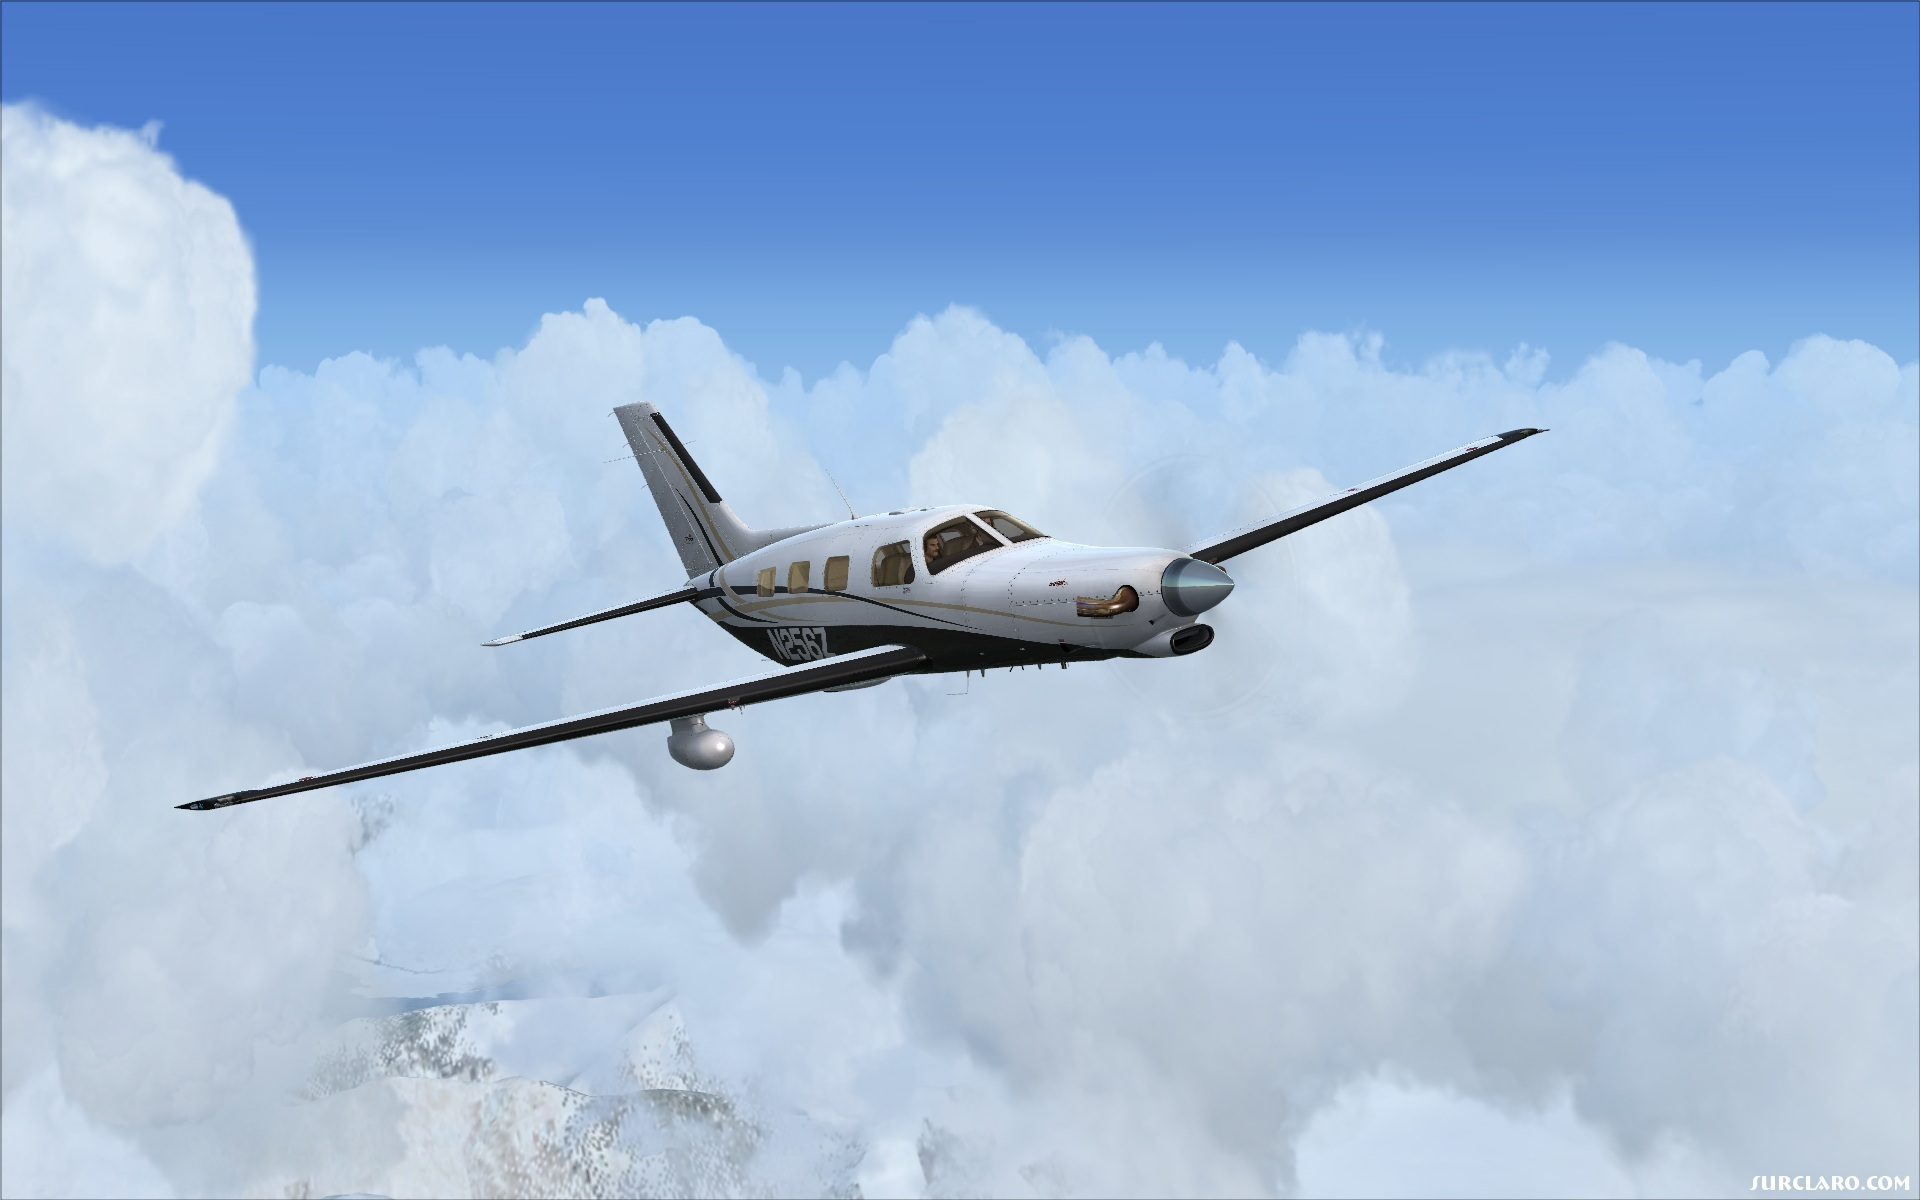 Flight Simulator X Piper P46 18666 Surclaro Photos